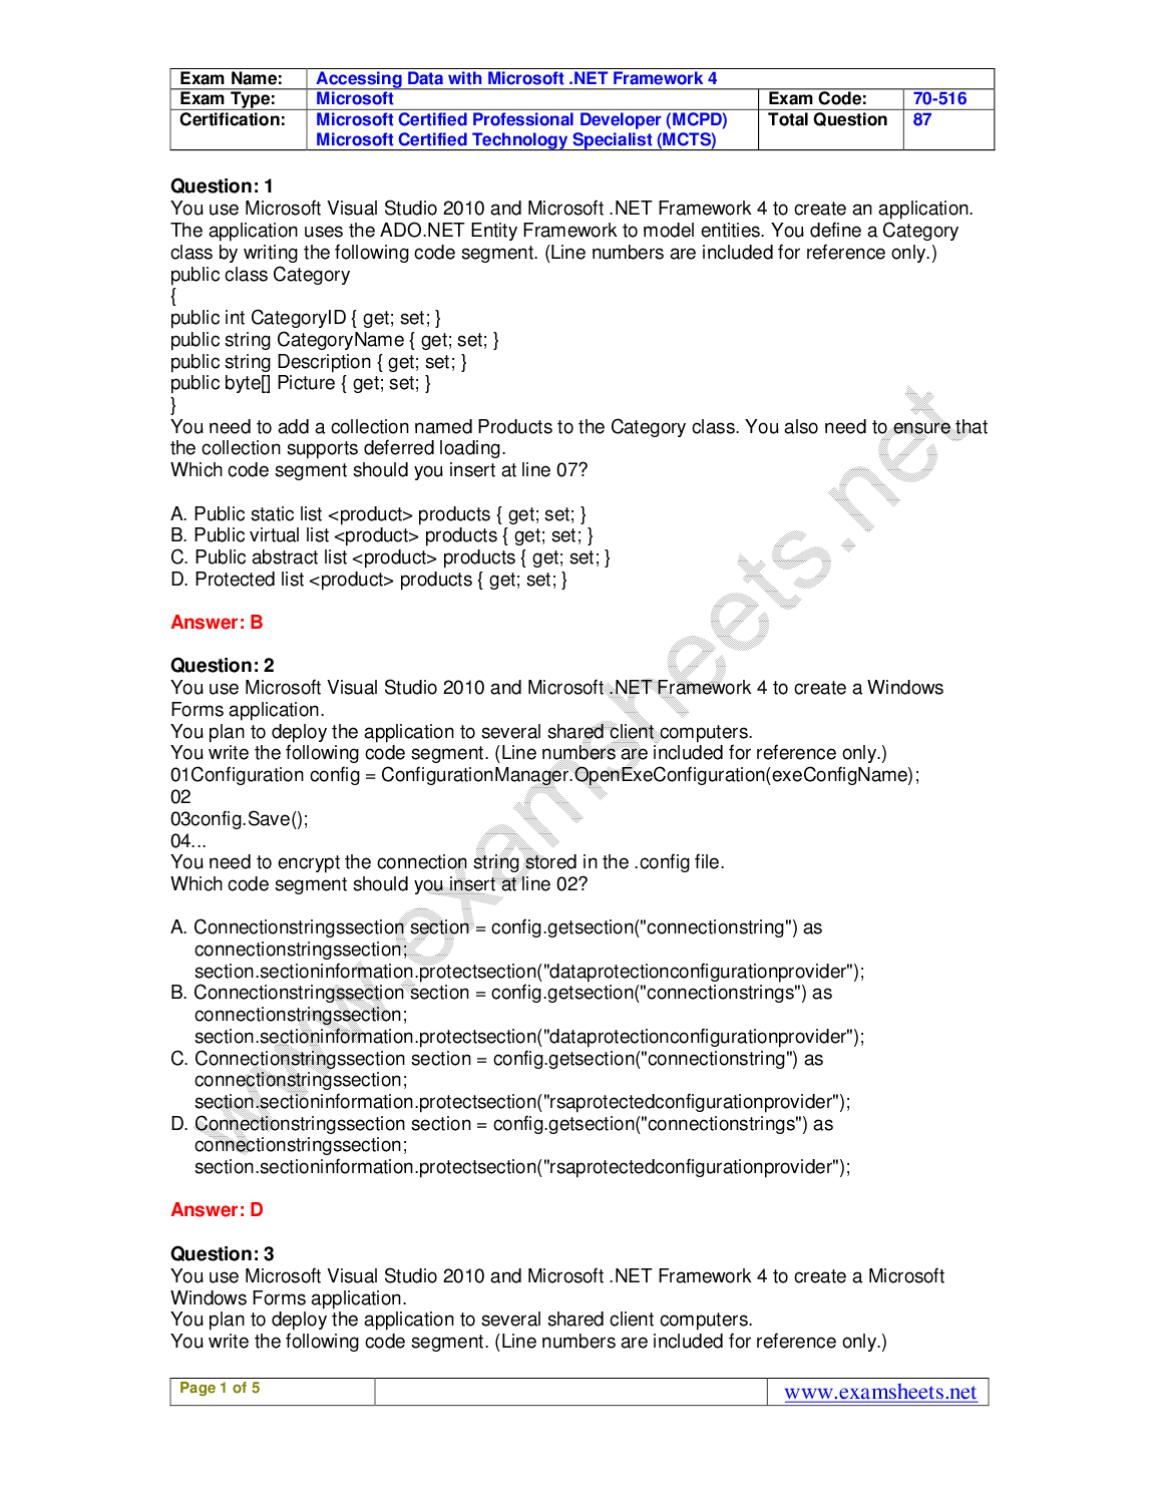 Exam sheets 70 516 practice exam questions microsoft 70 516 exam exam sheets 70 516 practice exam questions microsoft 70 516 exam preparation by robecca william issuu xflitez Image collections